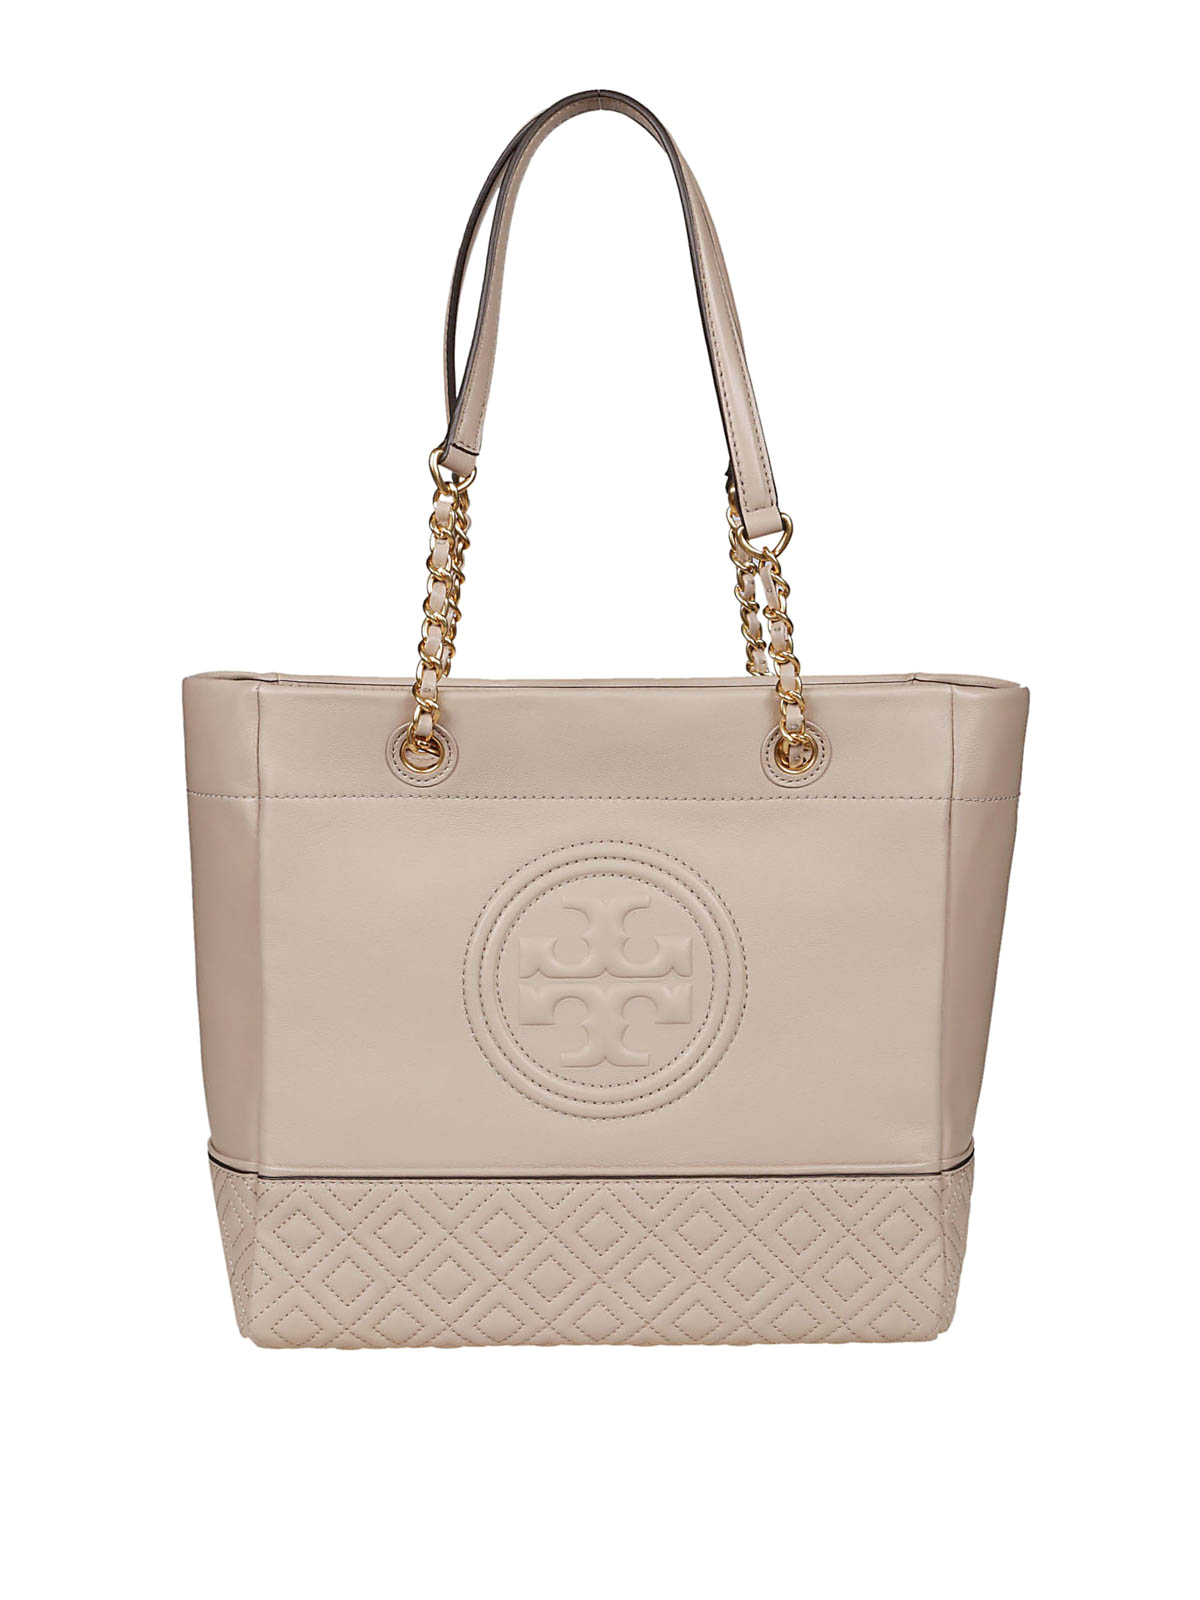 262fc6916d4 Tory Burch - Fleming light taupe leather tote bag - totes bags ...